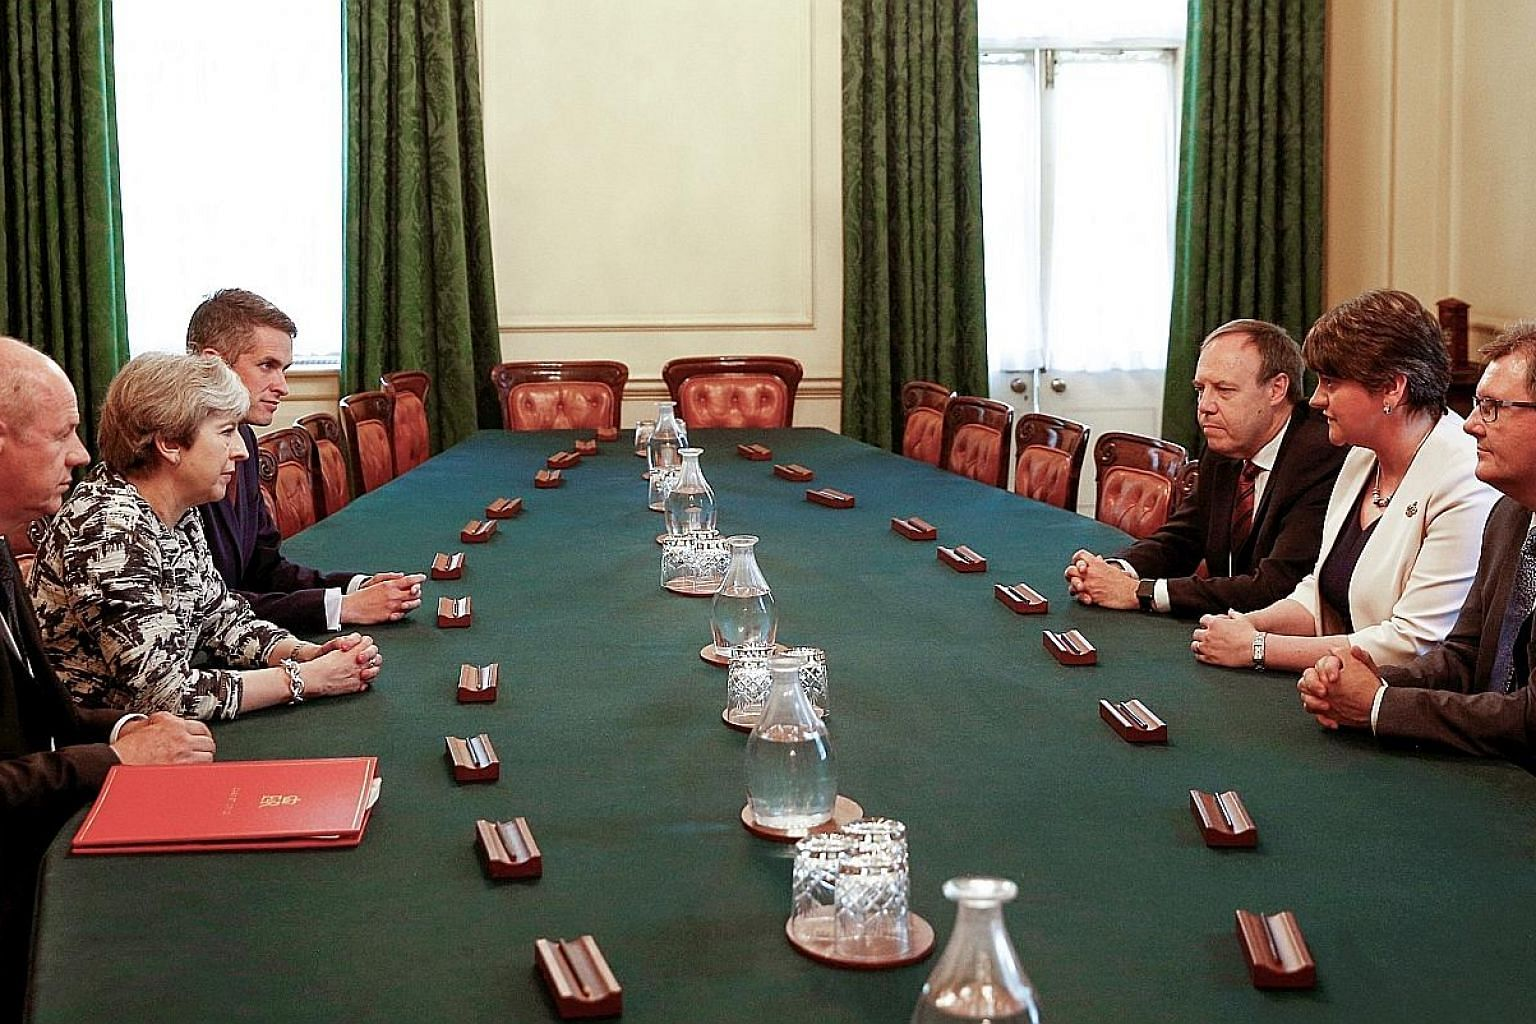 At the meeting yesterday held at 10, Downing Street in London were (clockwise from left) First Secretary of State Damian Green, Prime Minister Theresa May, Conservative Chief Whip Gavin Williamson, and the Democratic Unionist Party's deputy leader Ni